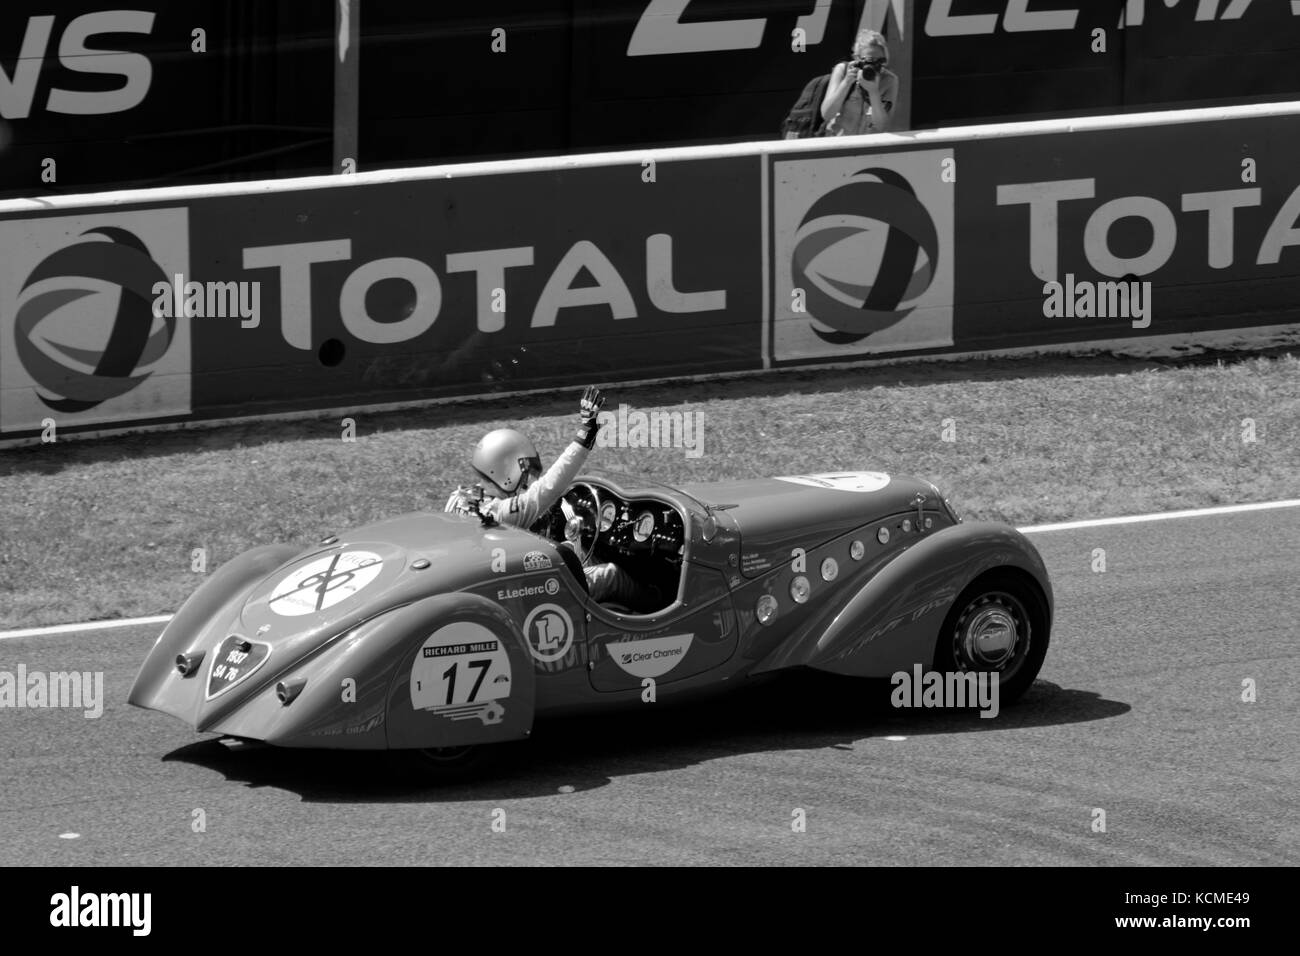 Old Racing Car Stock Photos & Old Racing Car Stock Images - Alamy